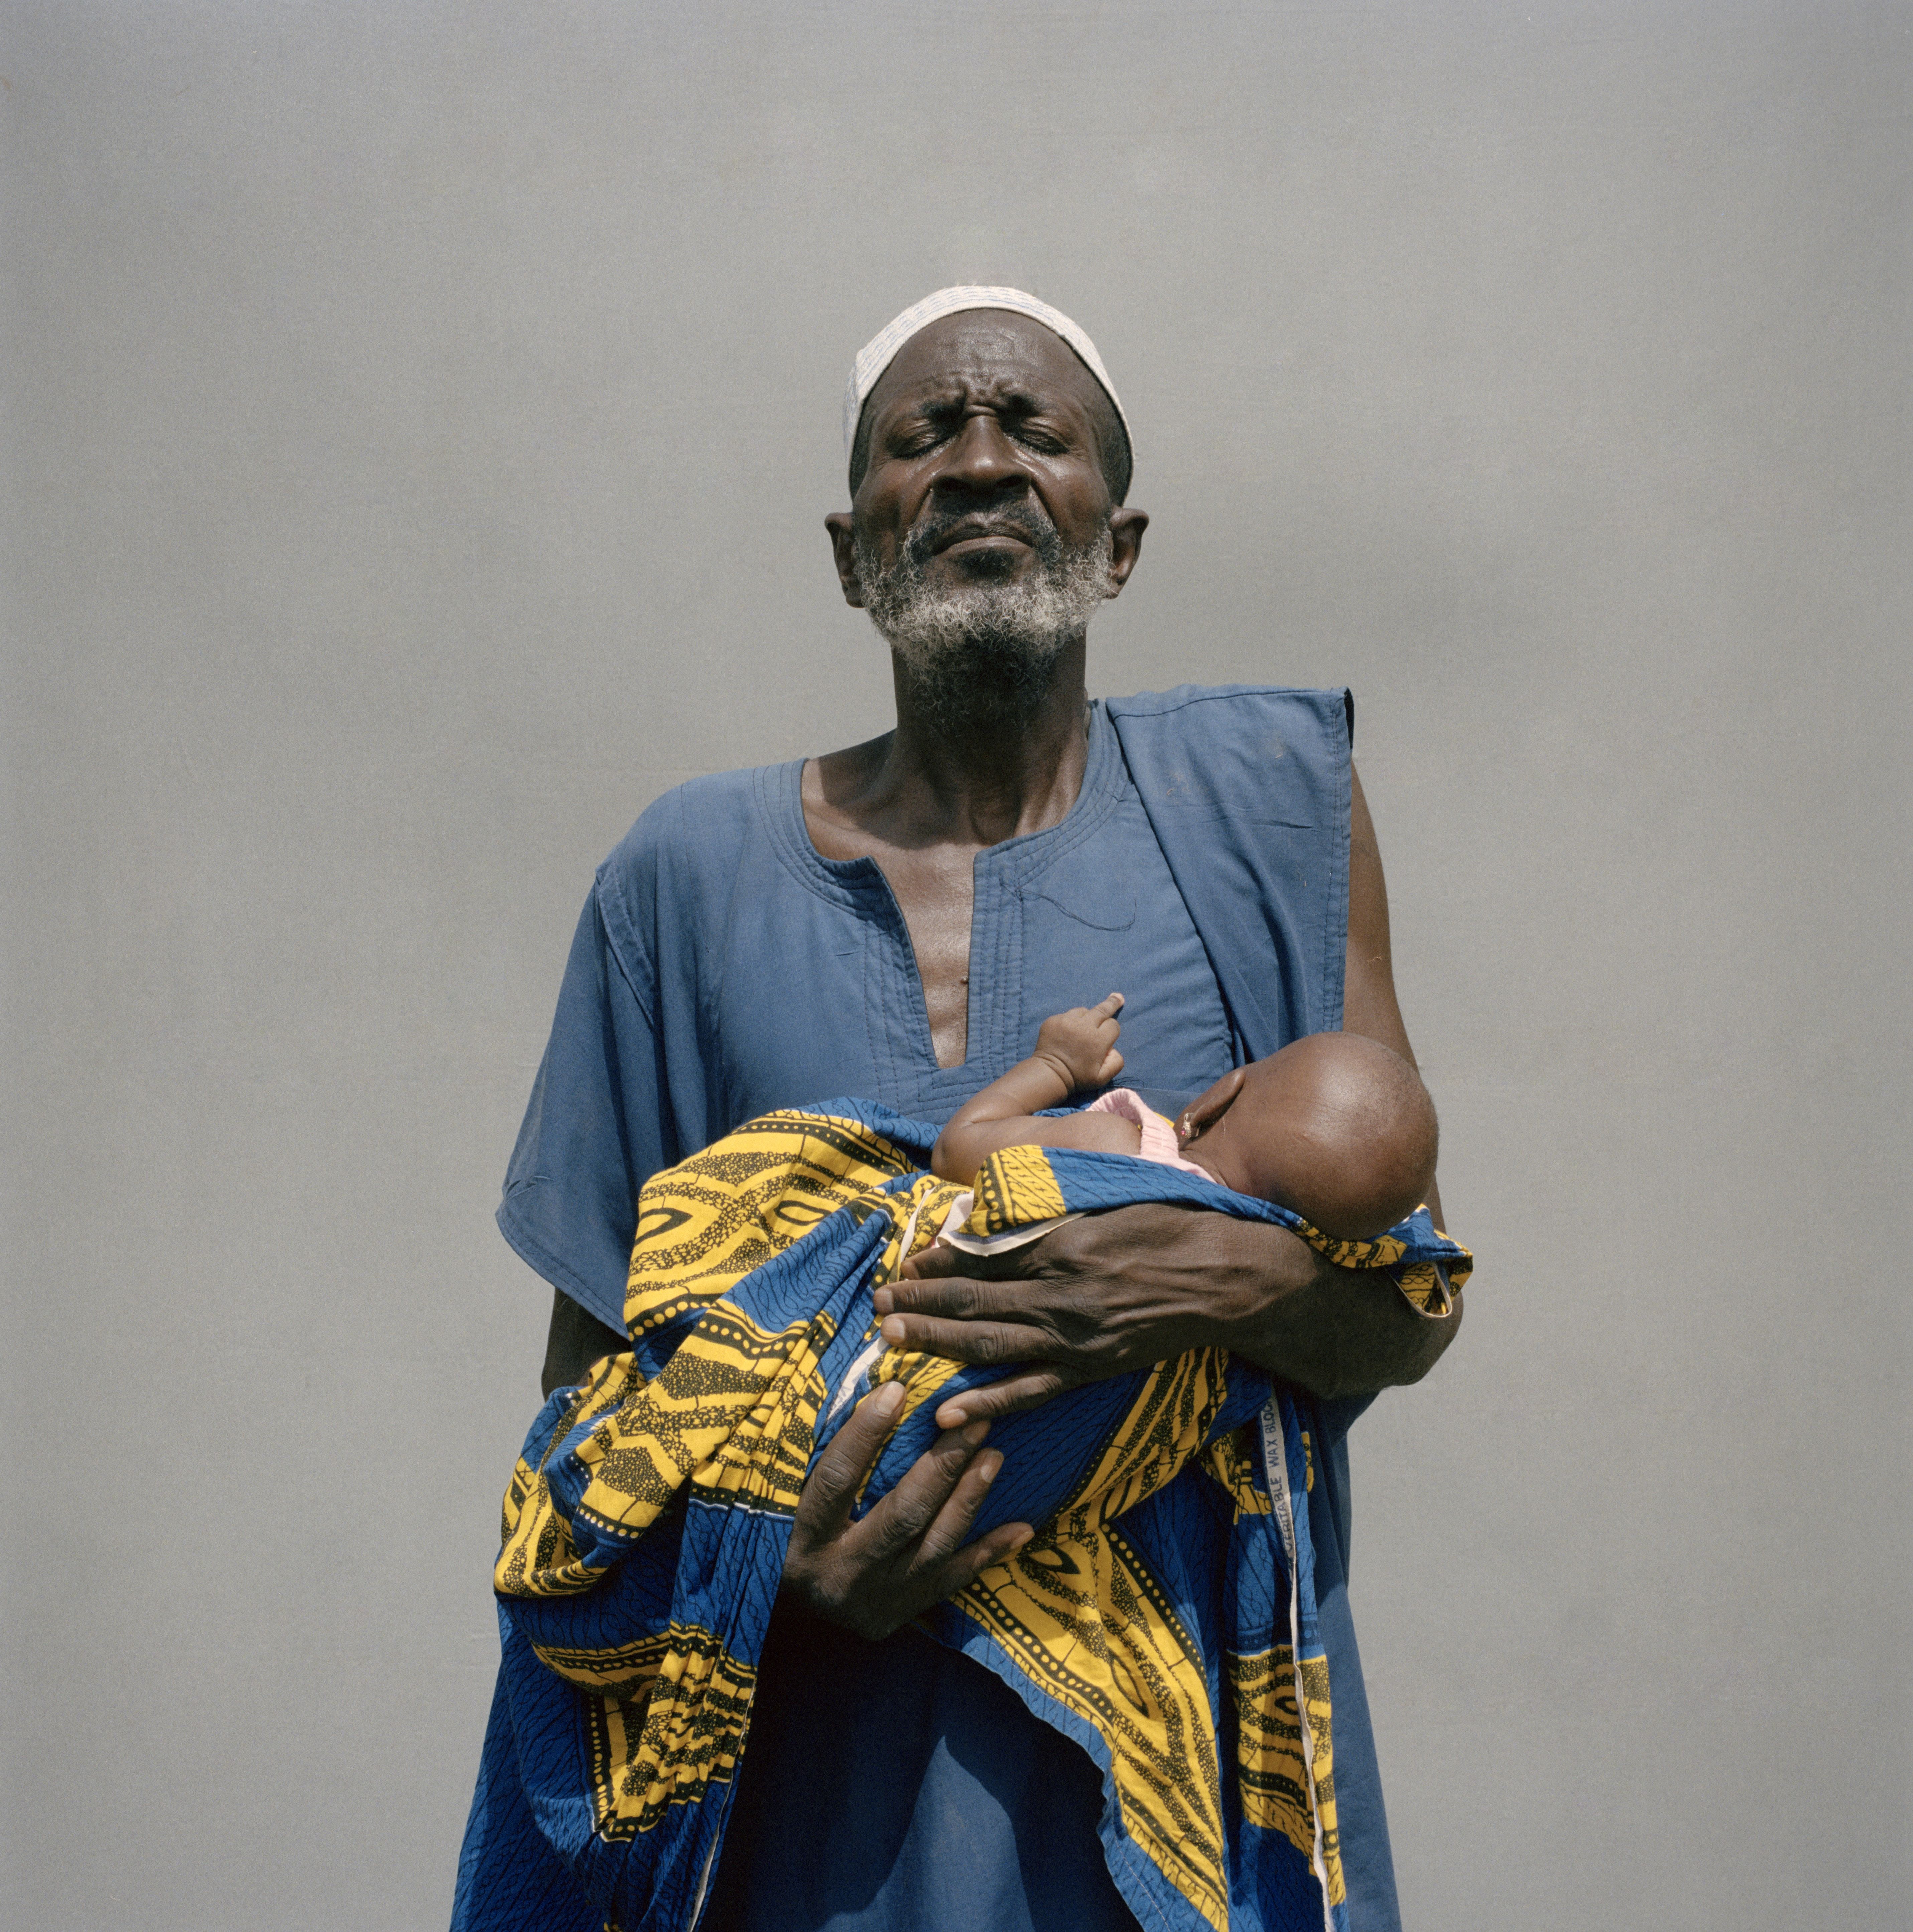 Elderly Nigerien man sits in a seeds store with his stick